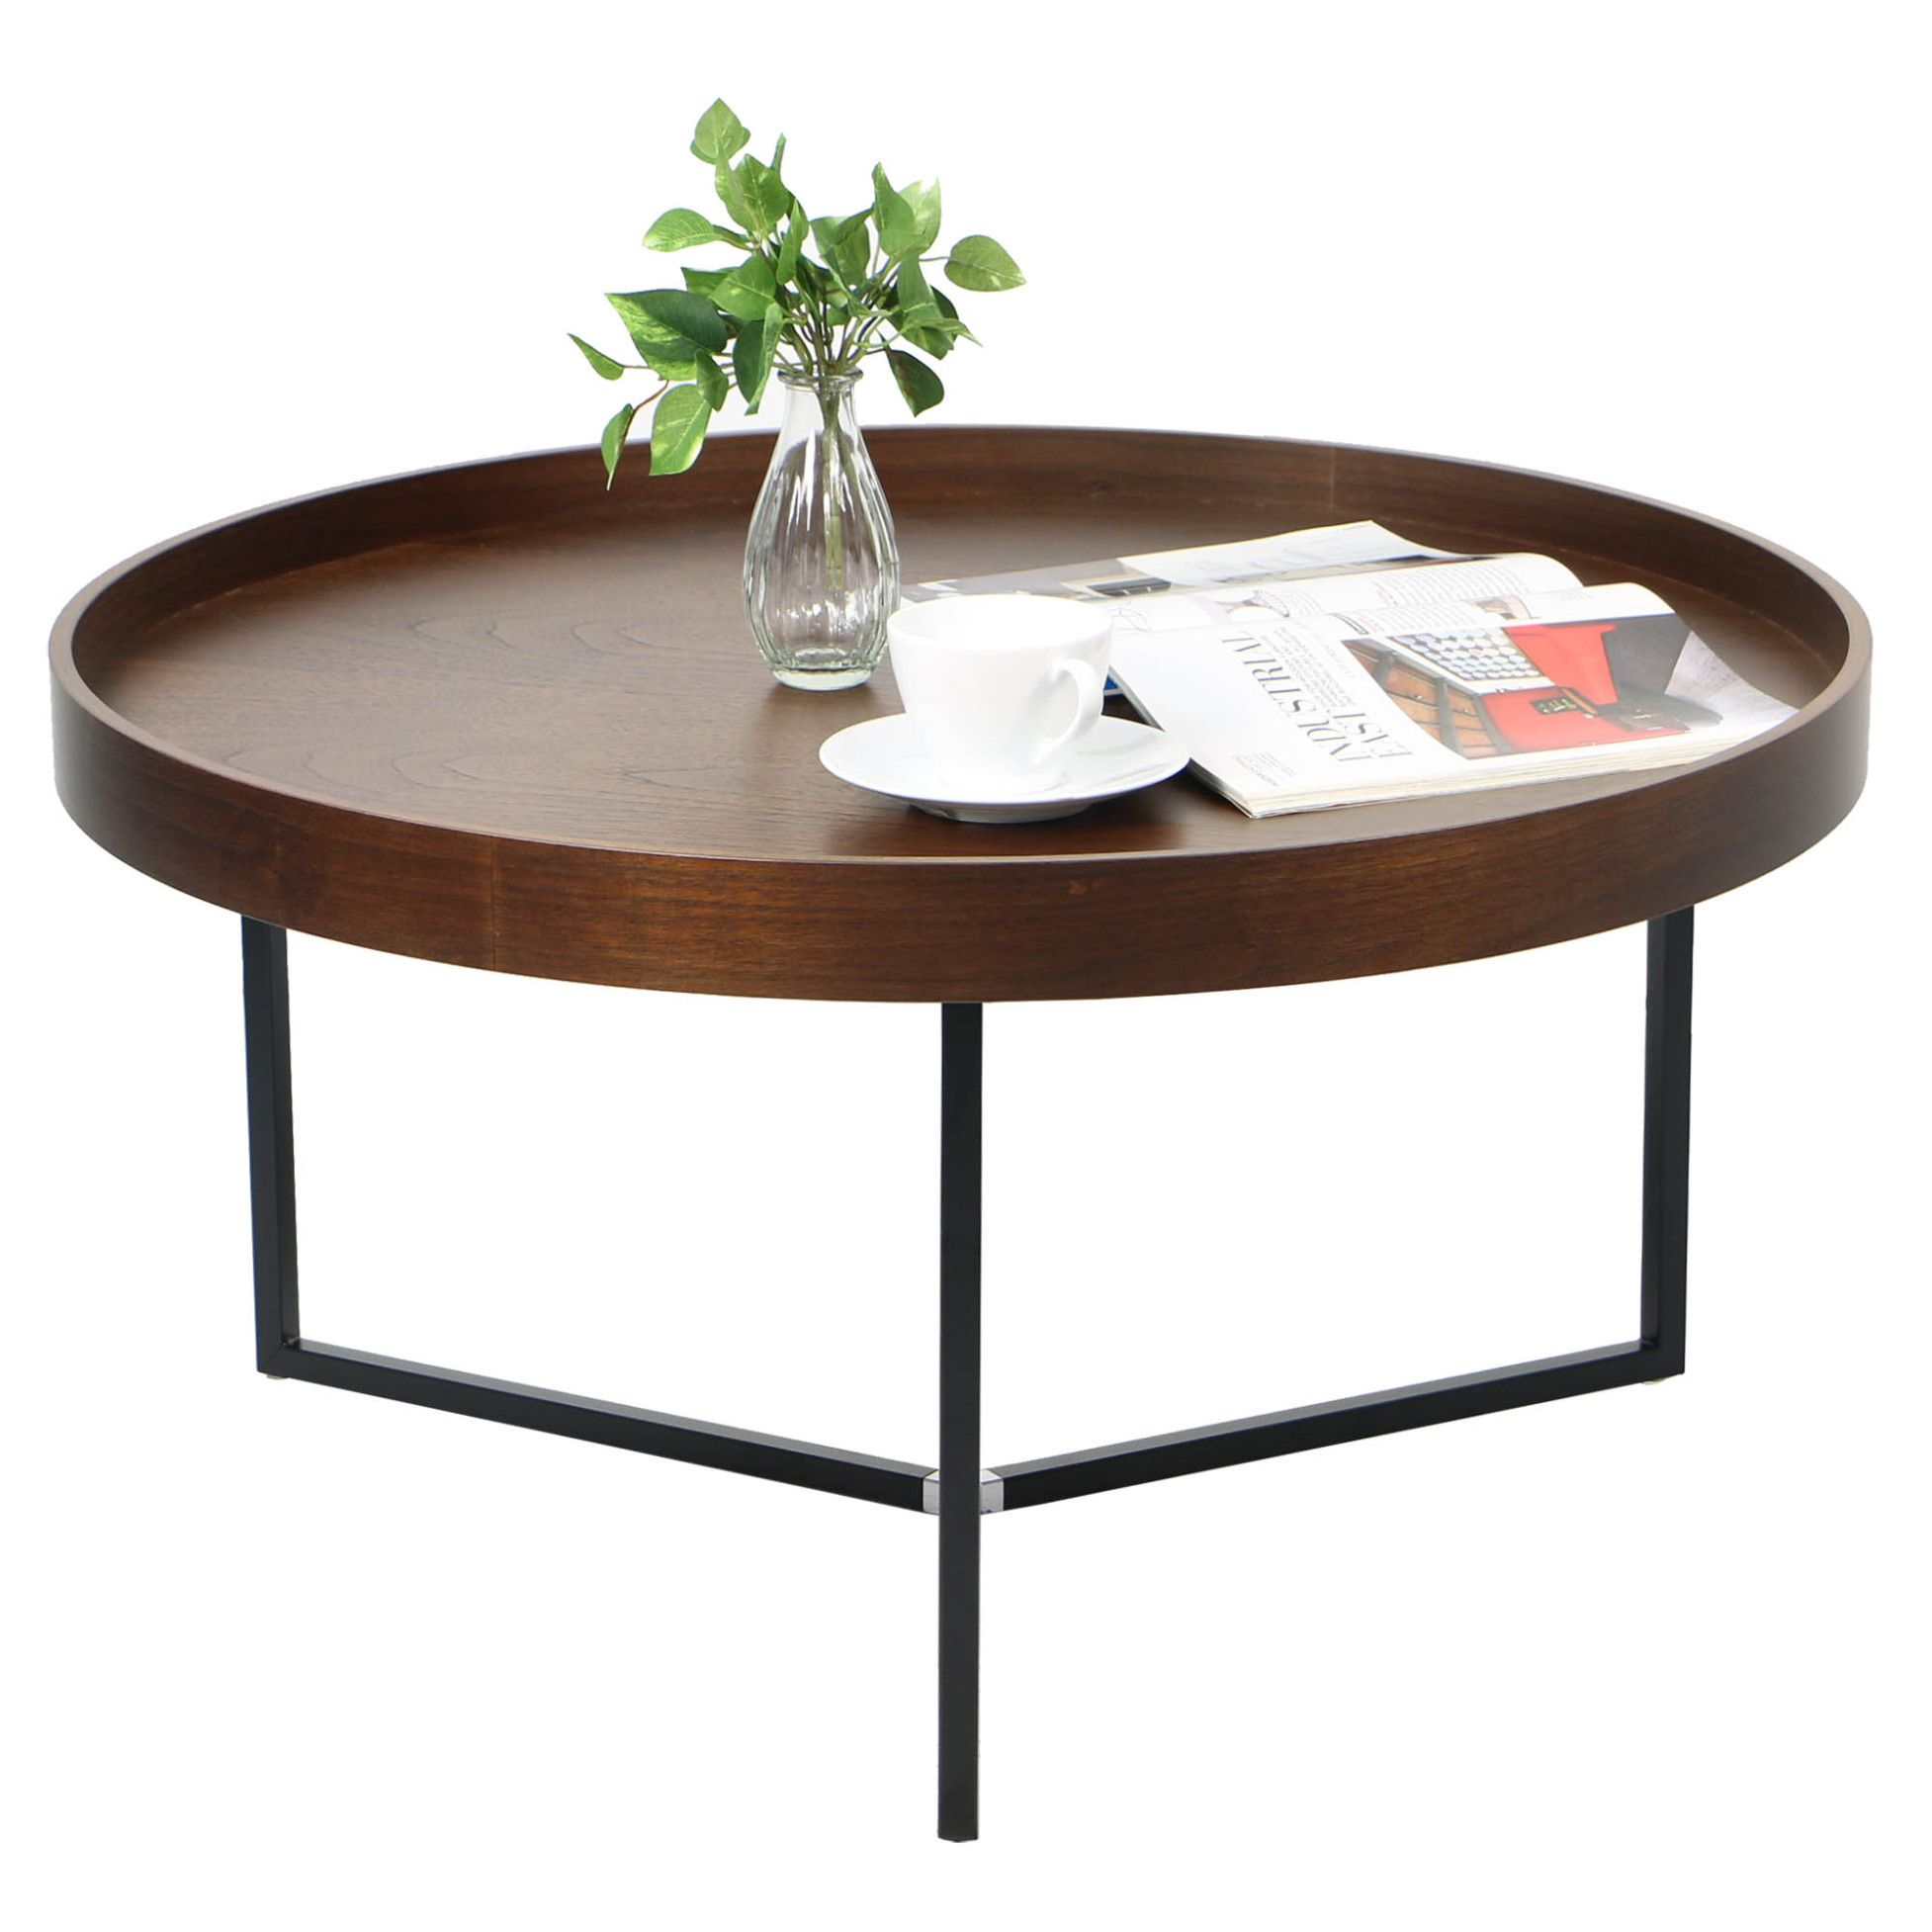 Buy Barrie Walnut Round Tray Table Online on FortyTwo from just $149.00 now! Shop with confidence with 100 Day Free Returns on selected products!